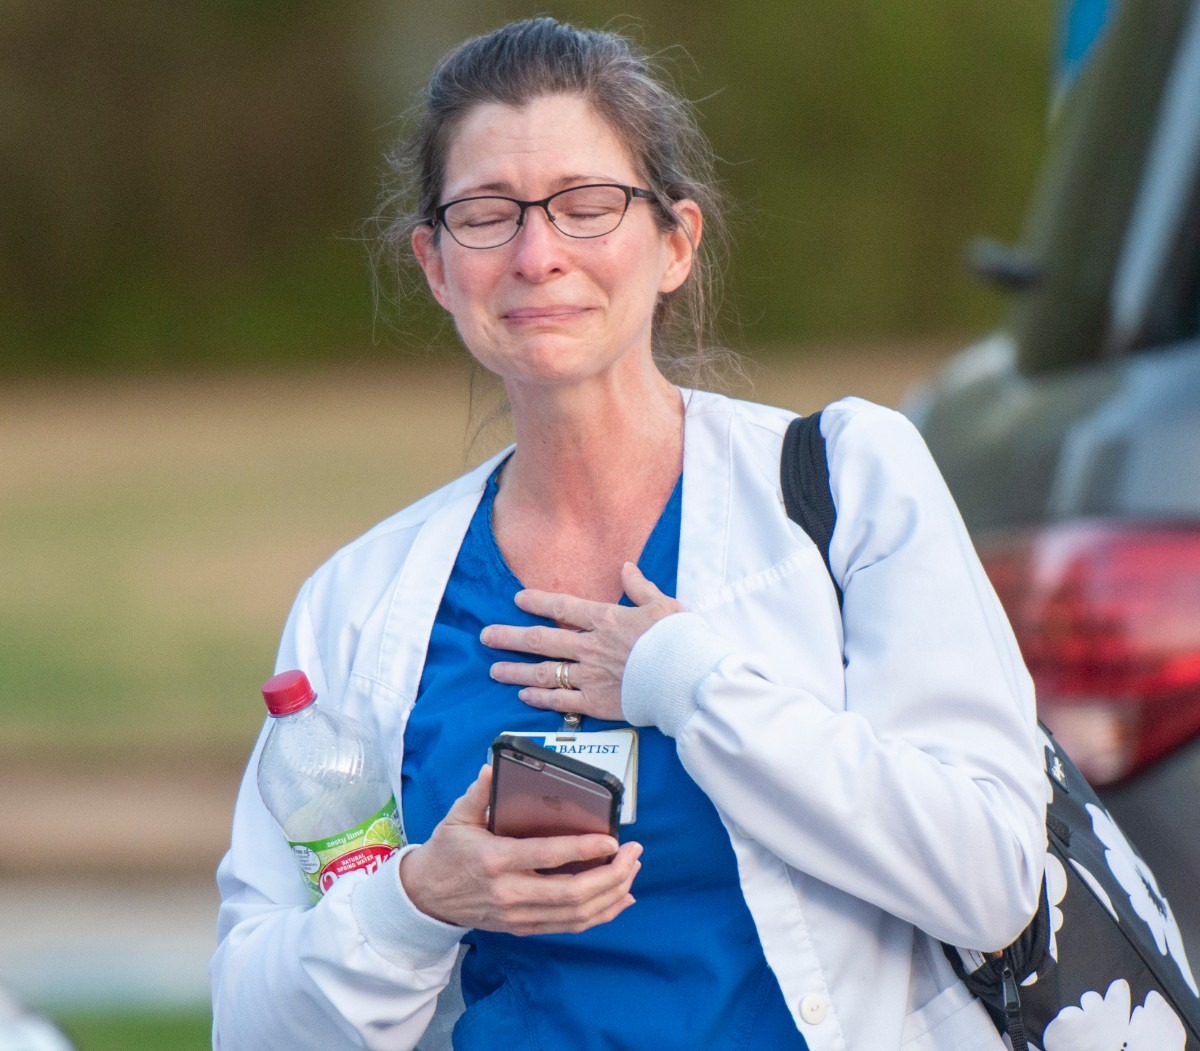 <strong>The kind gesture overwhelms registered nurse Sharon Gant.&nbsp; A group gathered to show their gratitude to health care workers Sunday night, March 29, 2020 outside Baptist Memorial Hospital-Collierville.&nbsp;</strong>(Greg Campbell/Special to The Daily Memphian)